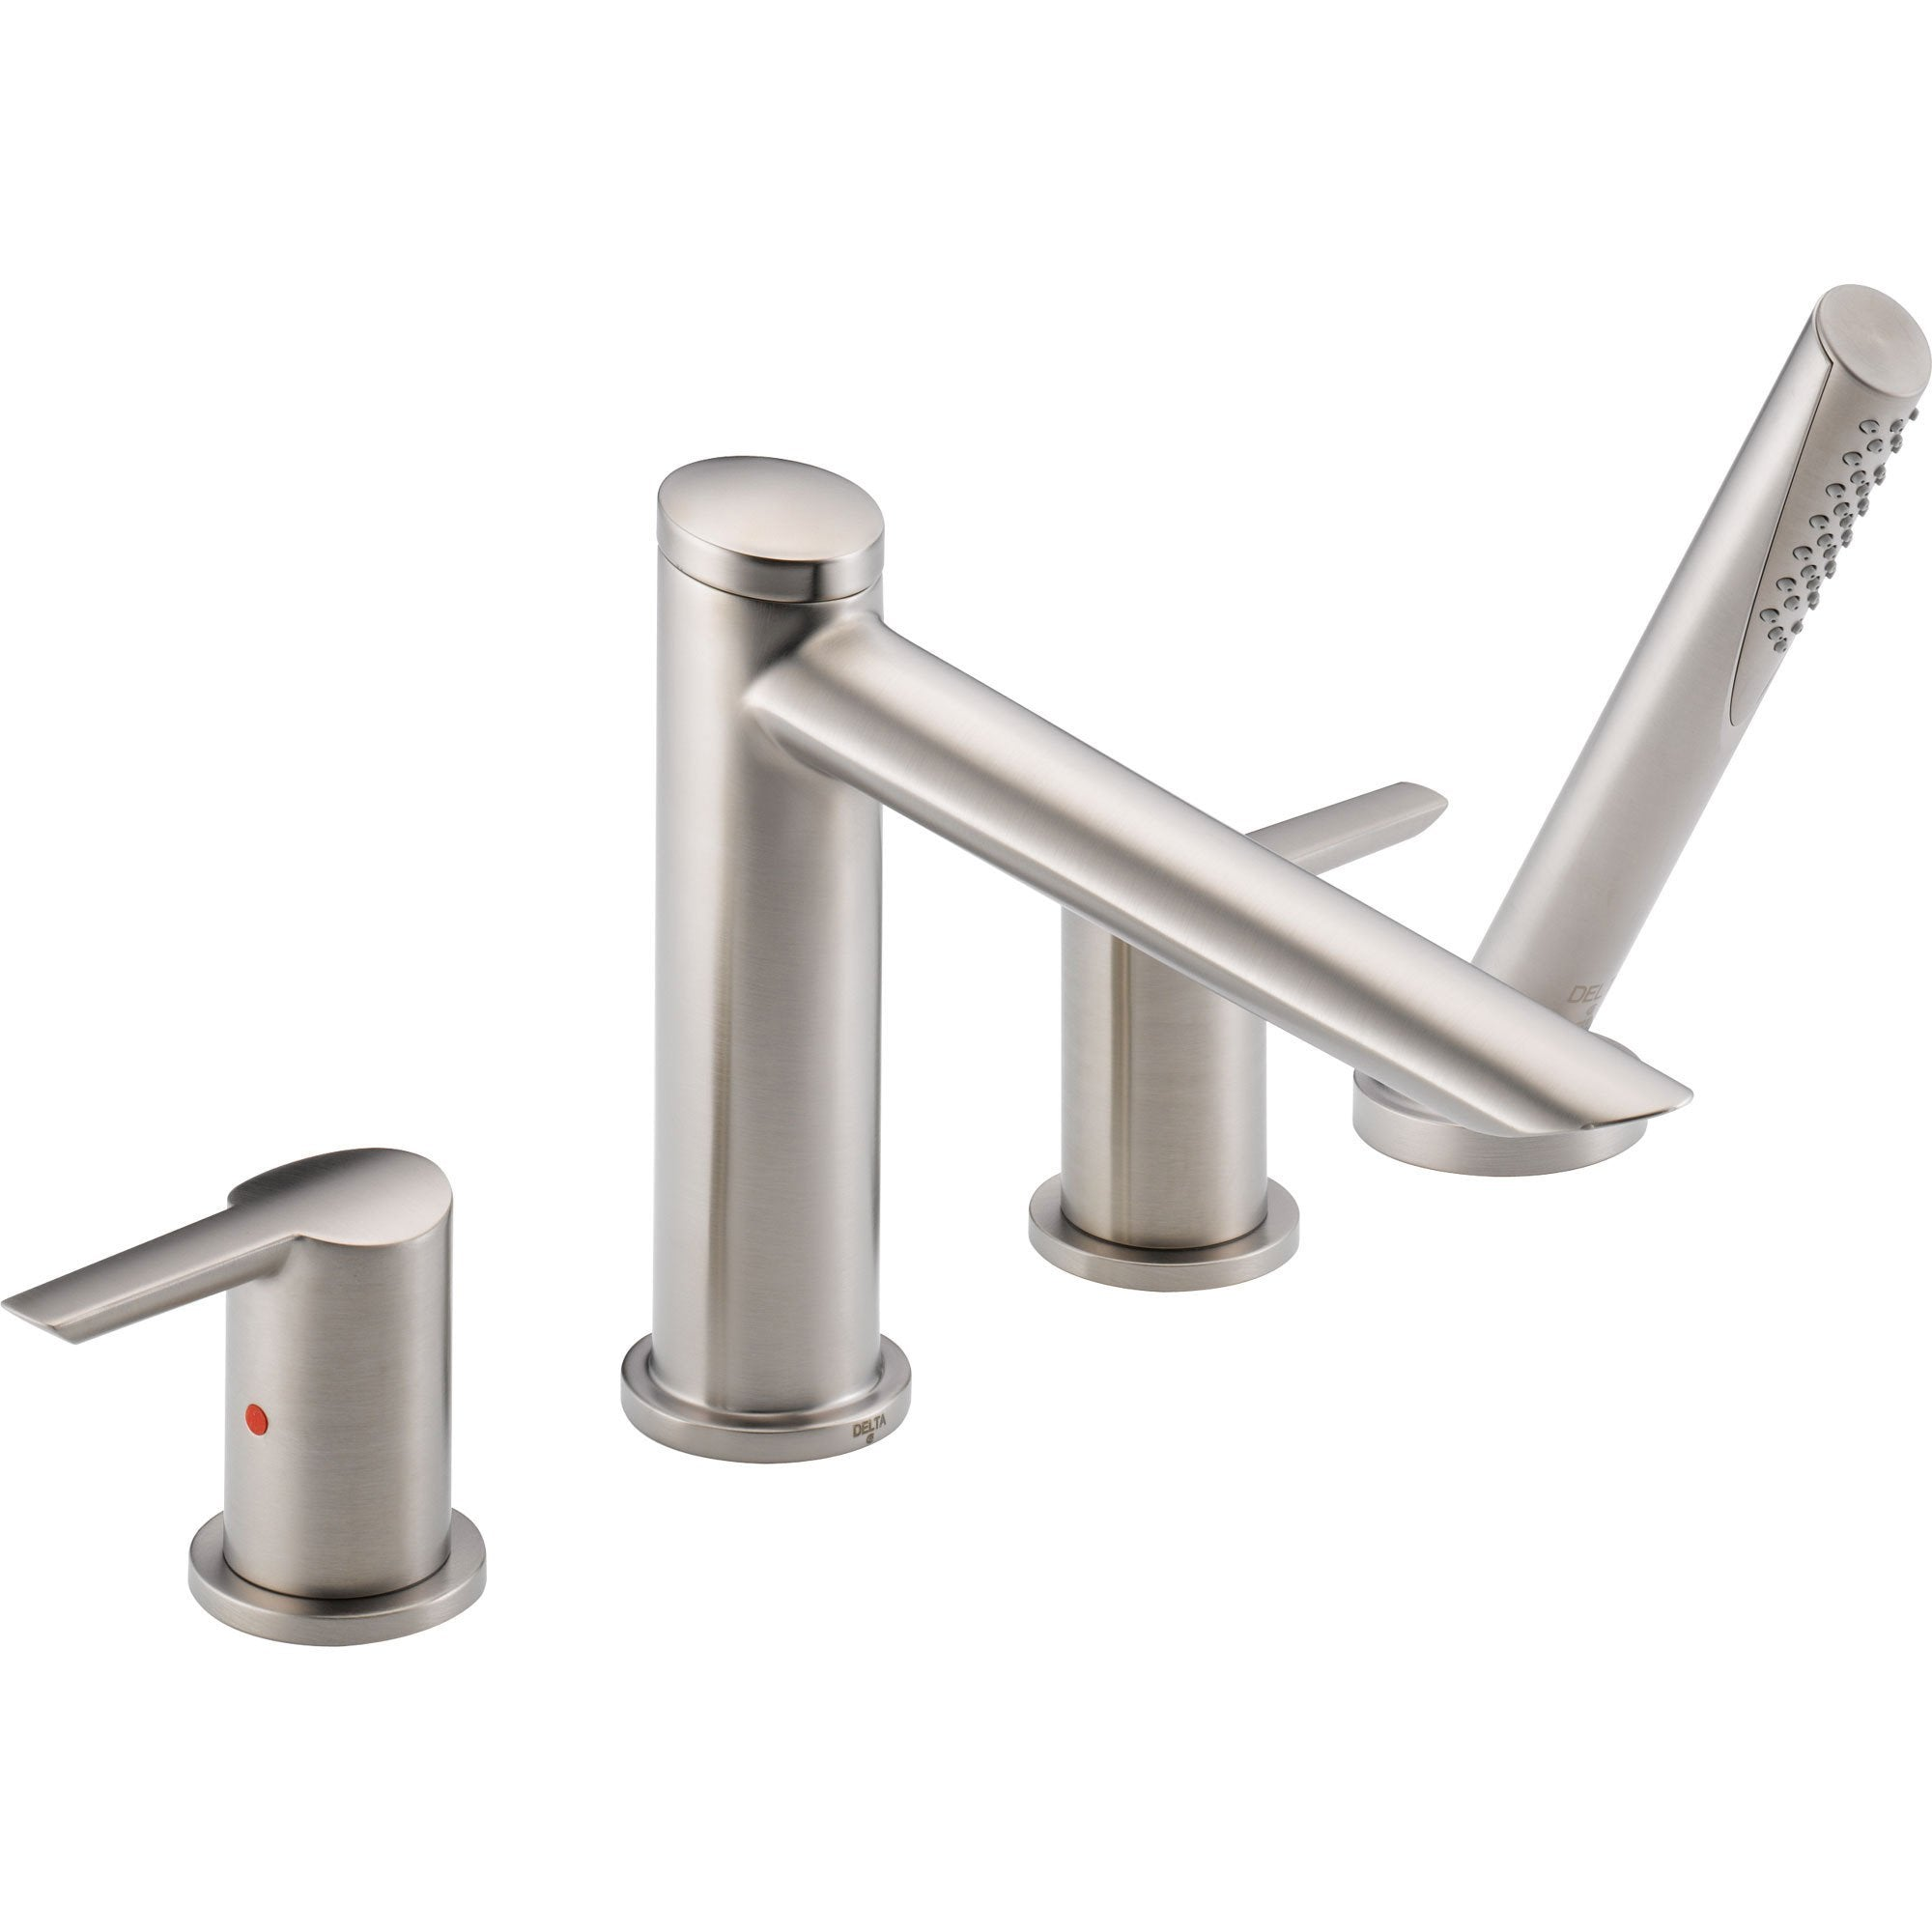 Delta Compel Stainless Steel Finish Roman Tub Faucet with Handshower Trim 584060